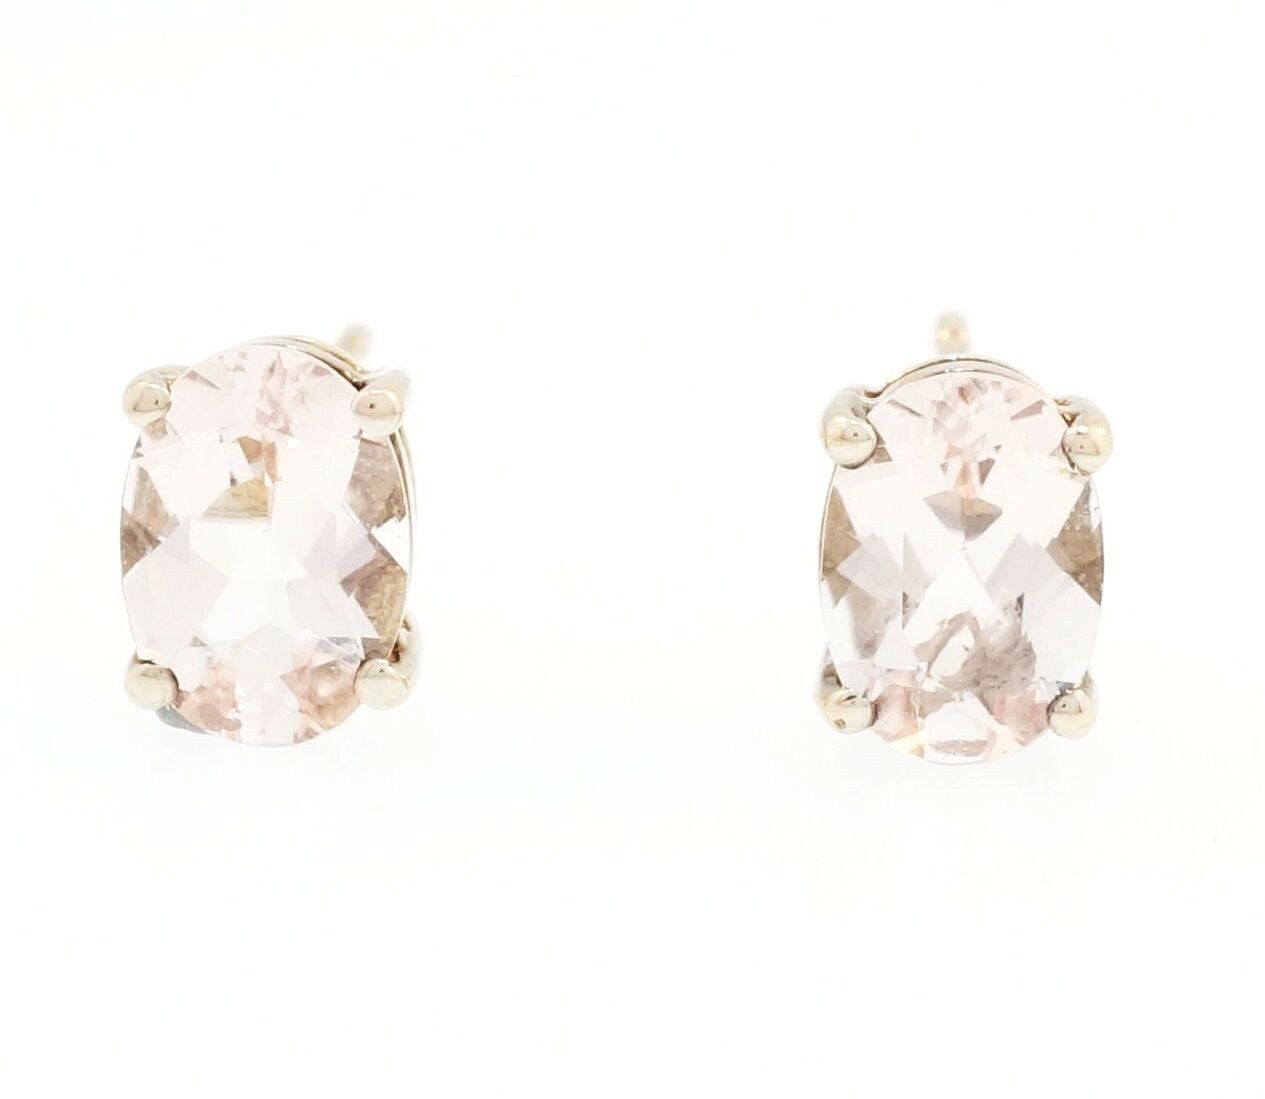 pin surround stud morganite earrings with diamond in gold rose carat